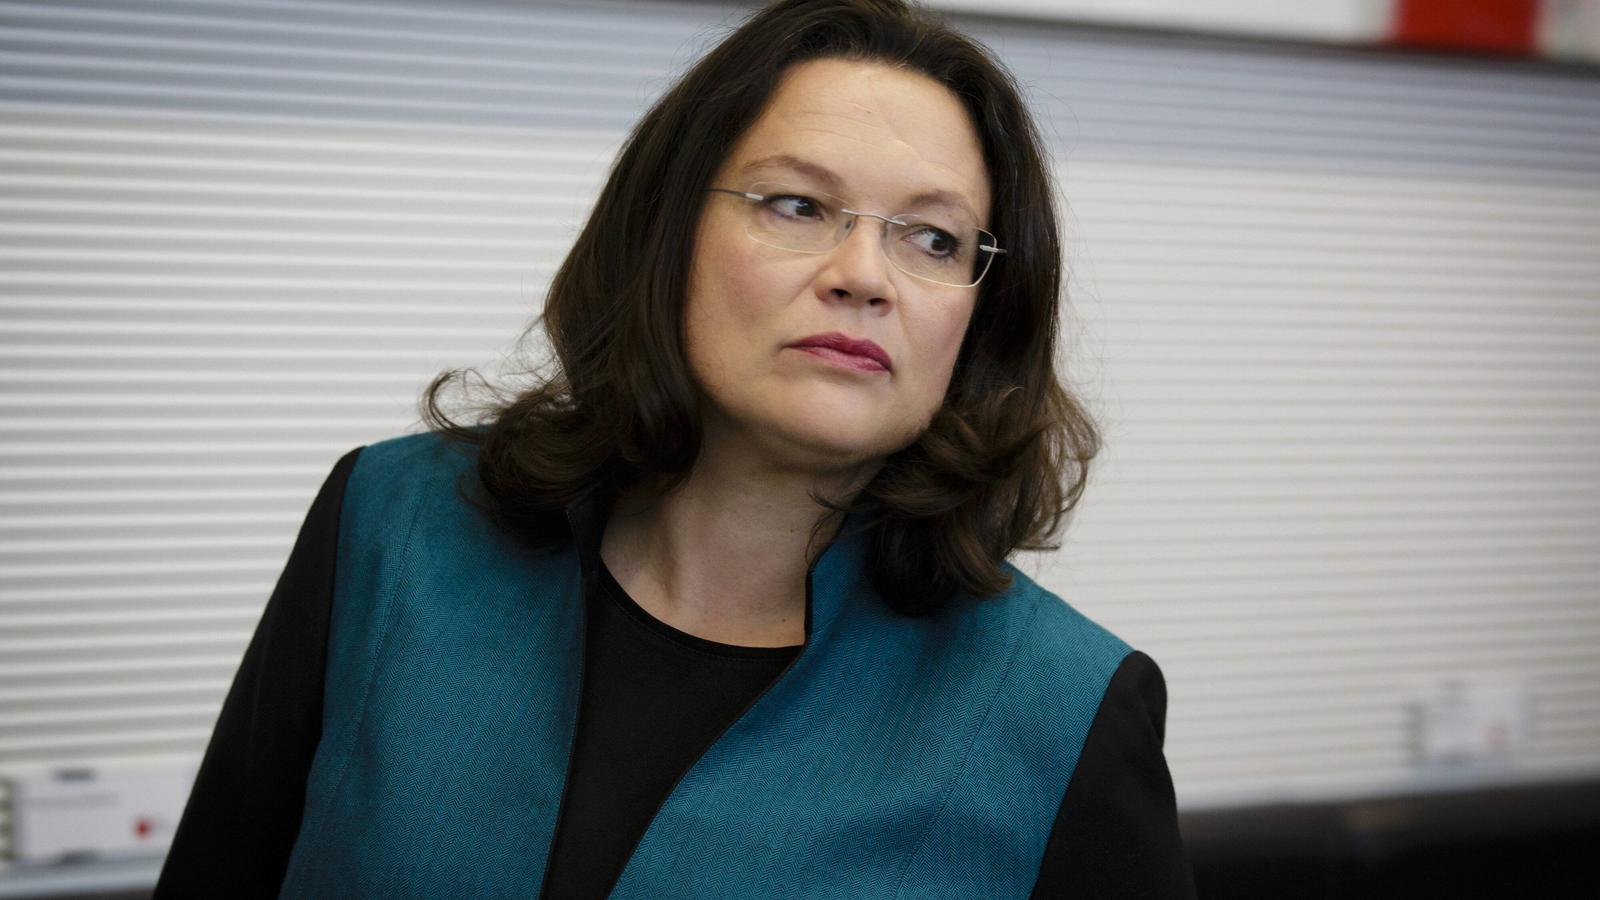 In-die-Fresse-Spruch-Andrea-Nahles-rgert-sich-ber-sich-selbst